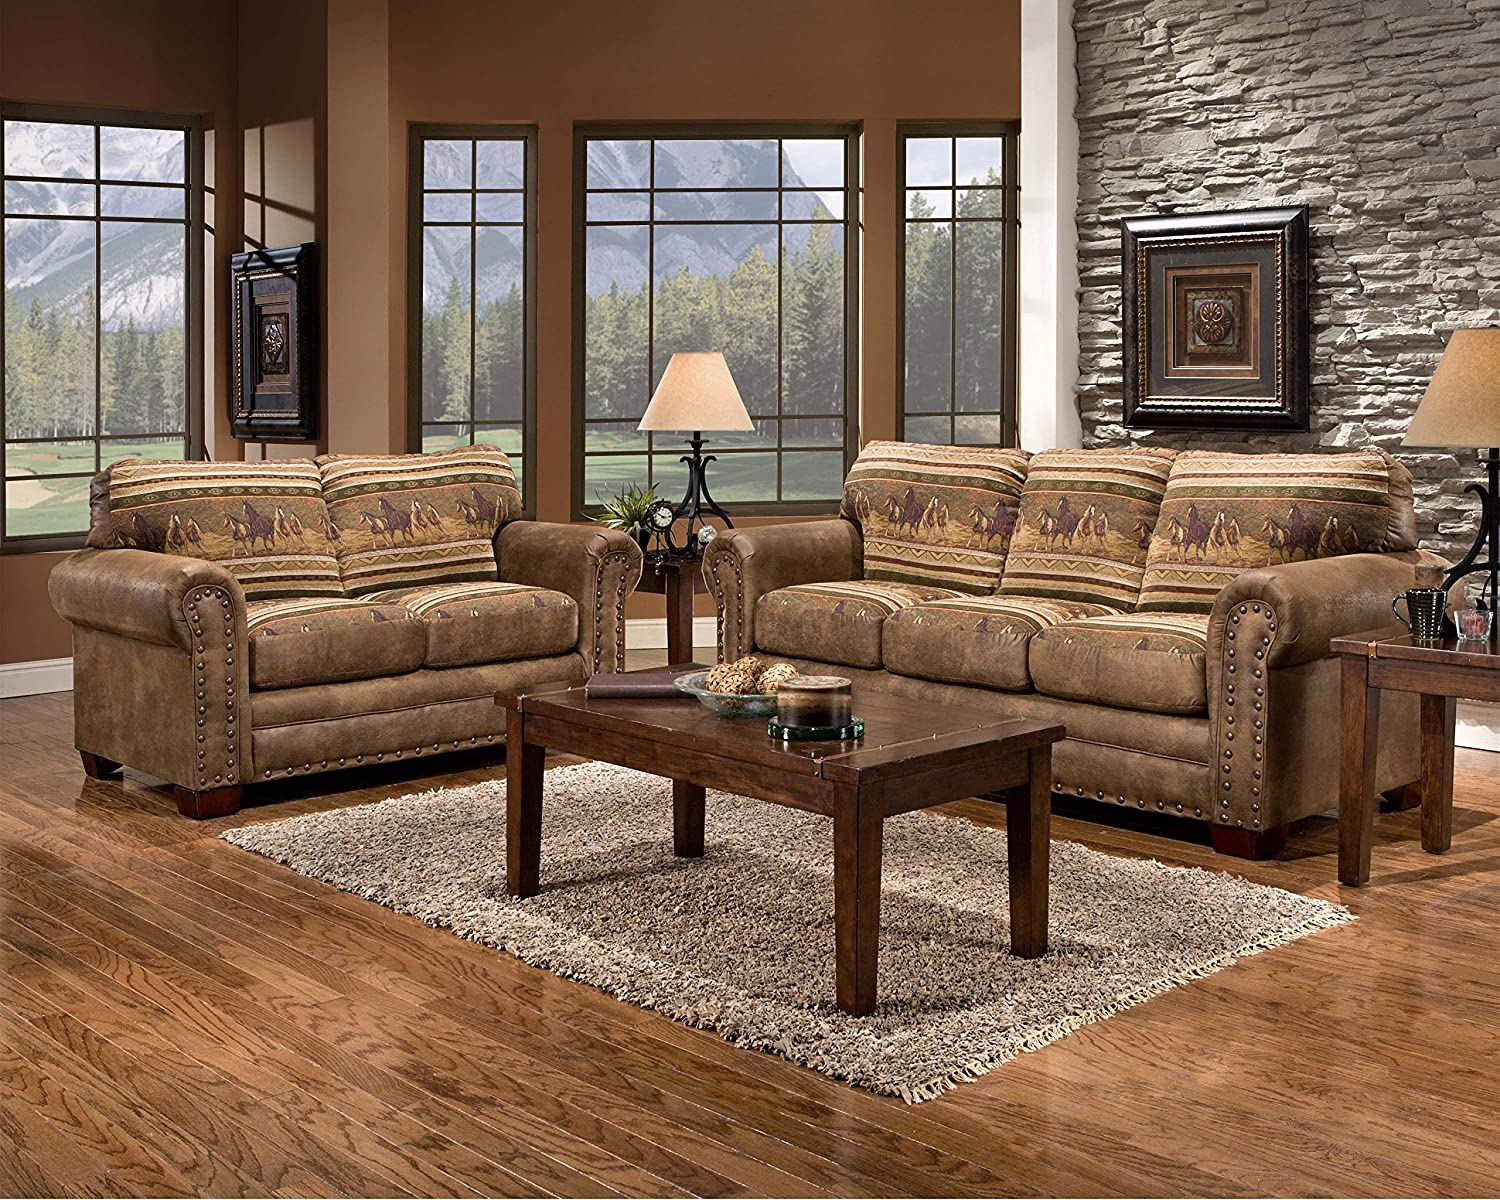 Nice Amazon.com: American Furniture Classics Wild Horses Sofa: Kitchen U0026 Dining